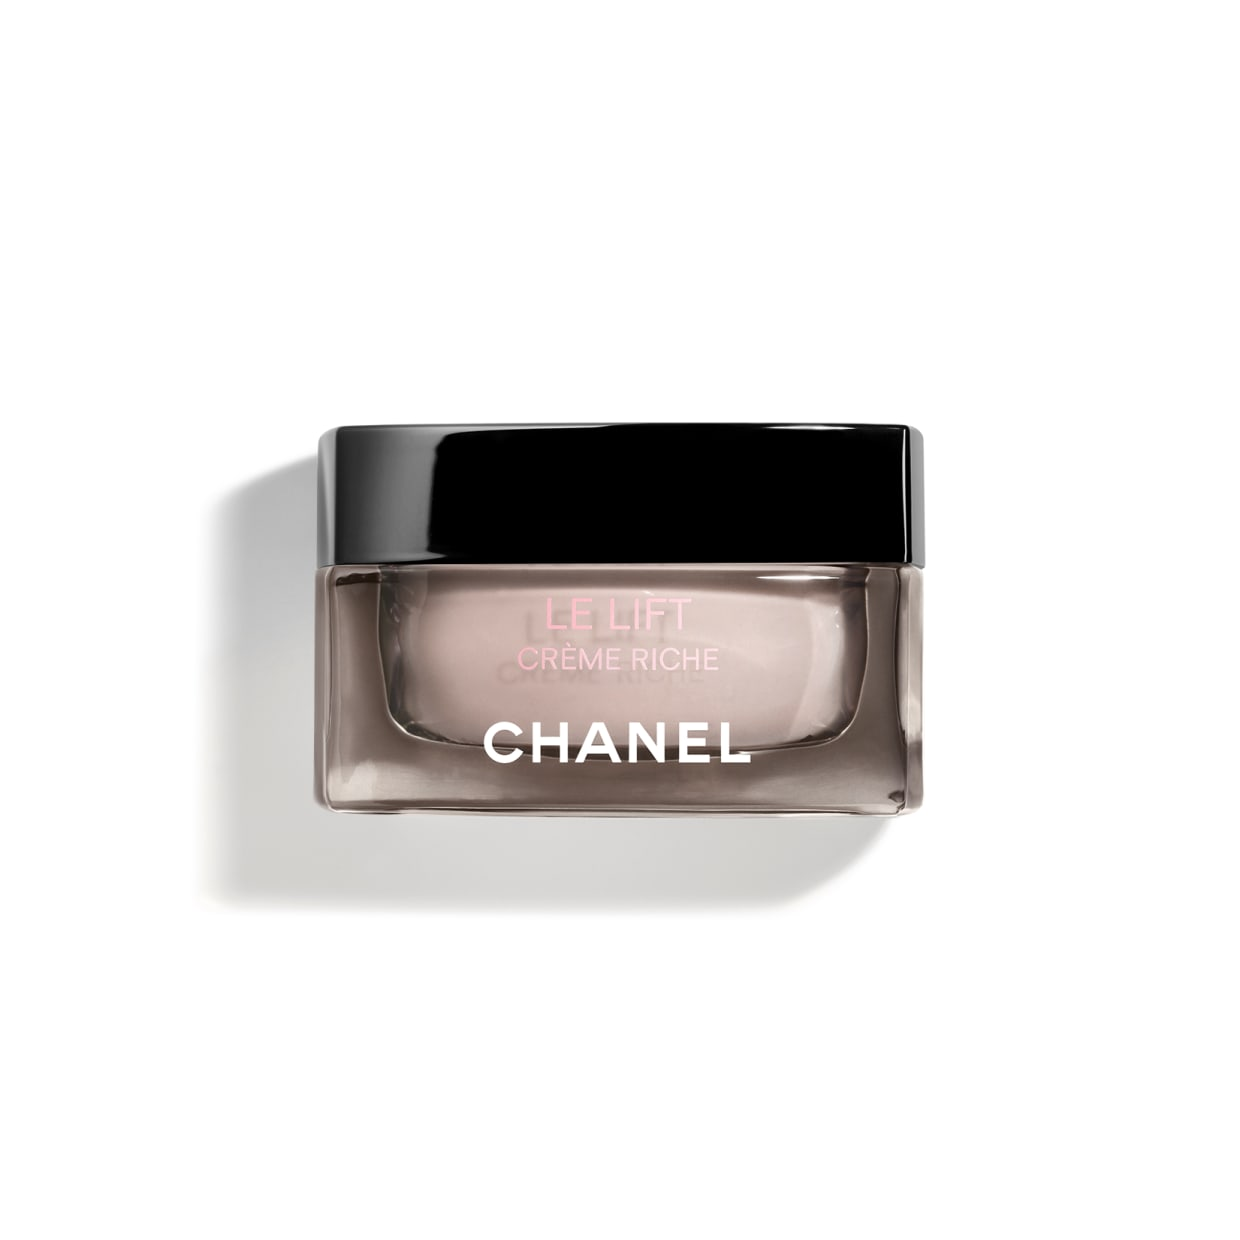 Chanel Le Lift Creme Riche SMOOTHING AND FIRMING Botanical Alfalfa Concentrate 50 ml